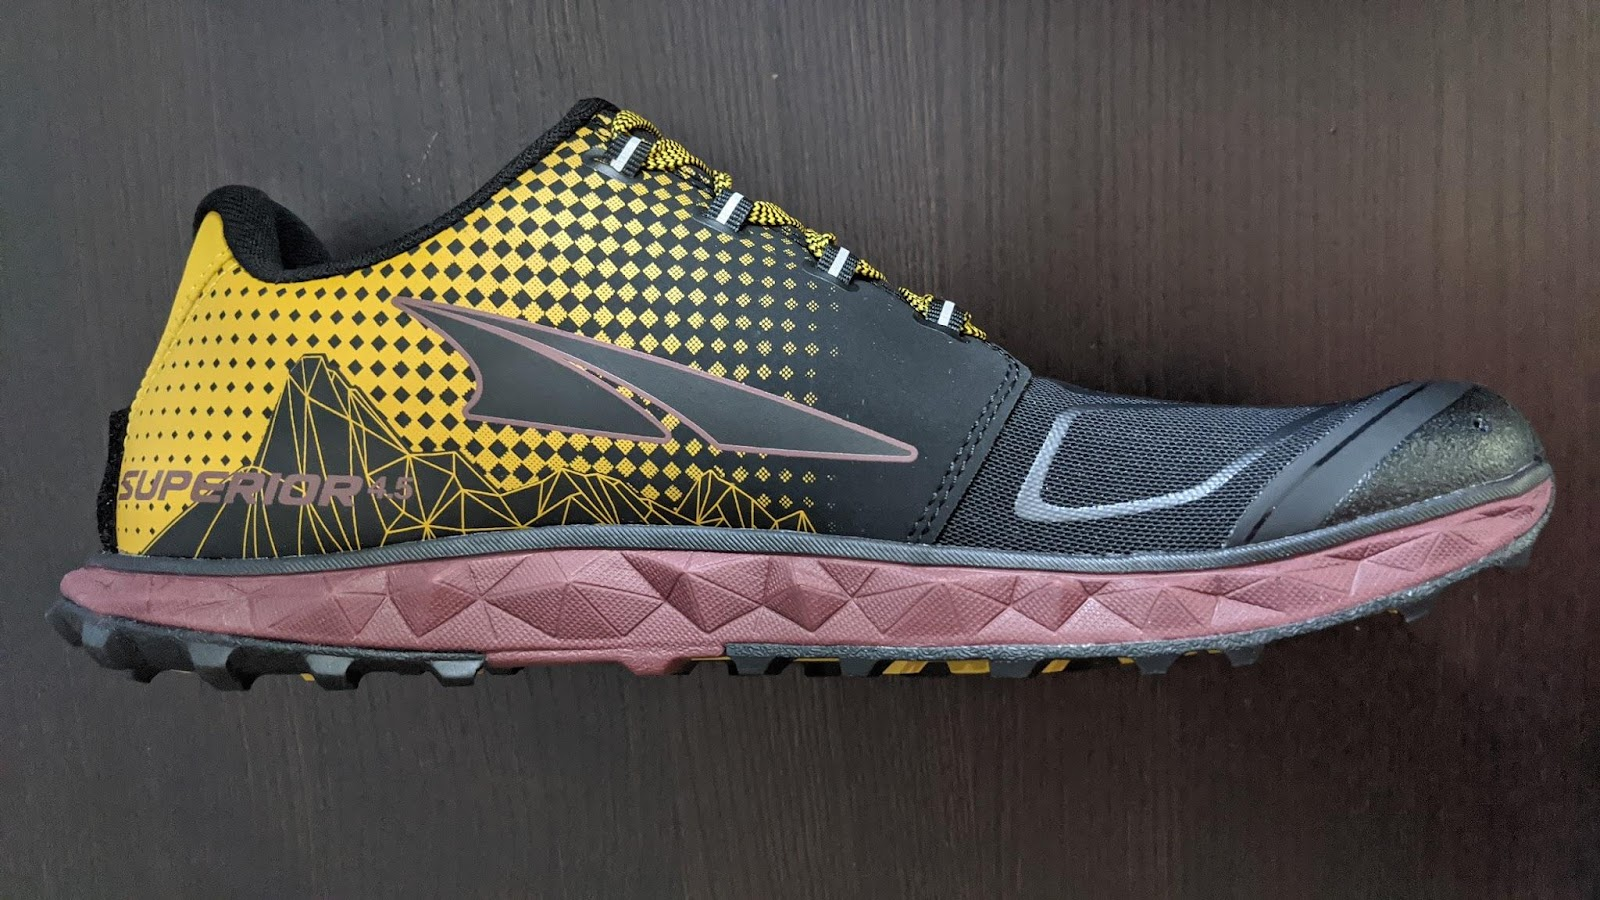 Road Trail Run Altra Superior 4 5 Review A Trail Runner For Fast Fun Improved